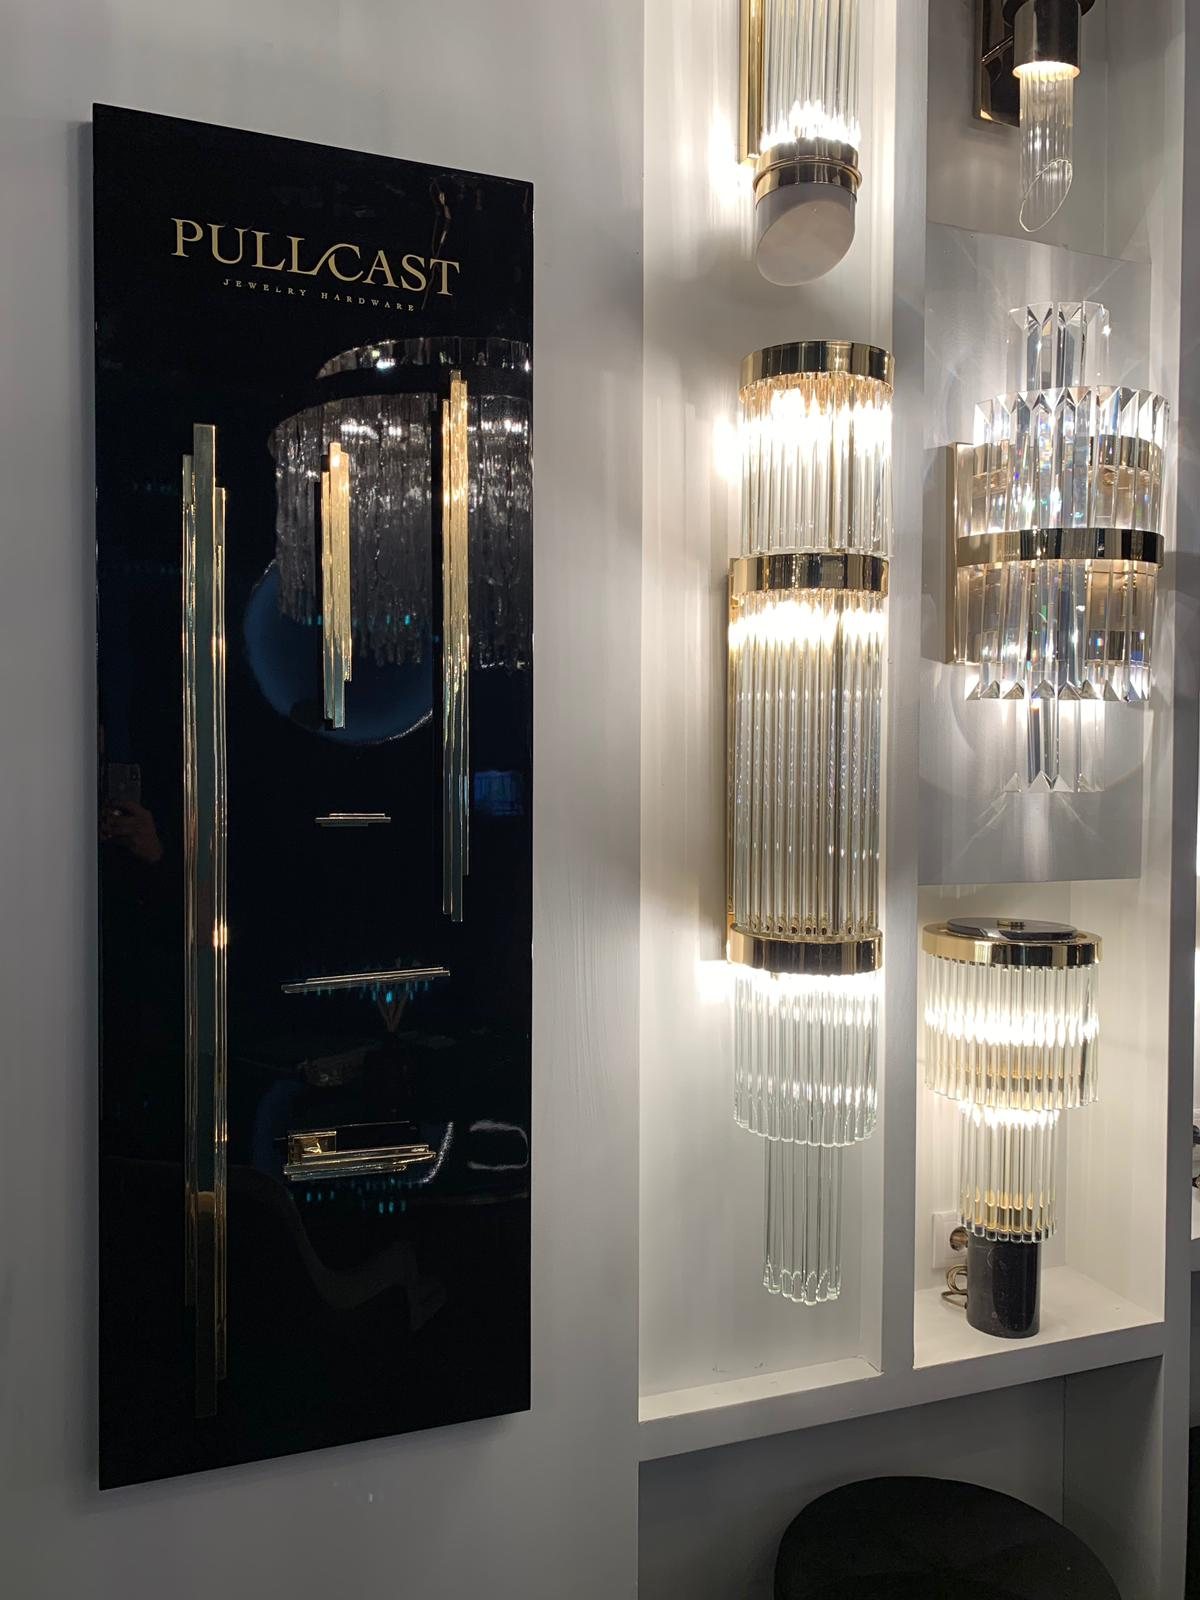 Discover the 4 Top Showrooms of PullCast Around The World Top Showrooms Discover the 4 Top Showrooms of PullCast Around The World WhatsApp Image 2018 11 12 at 17